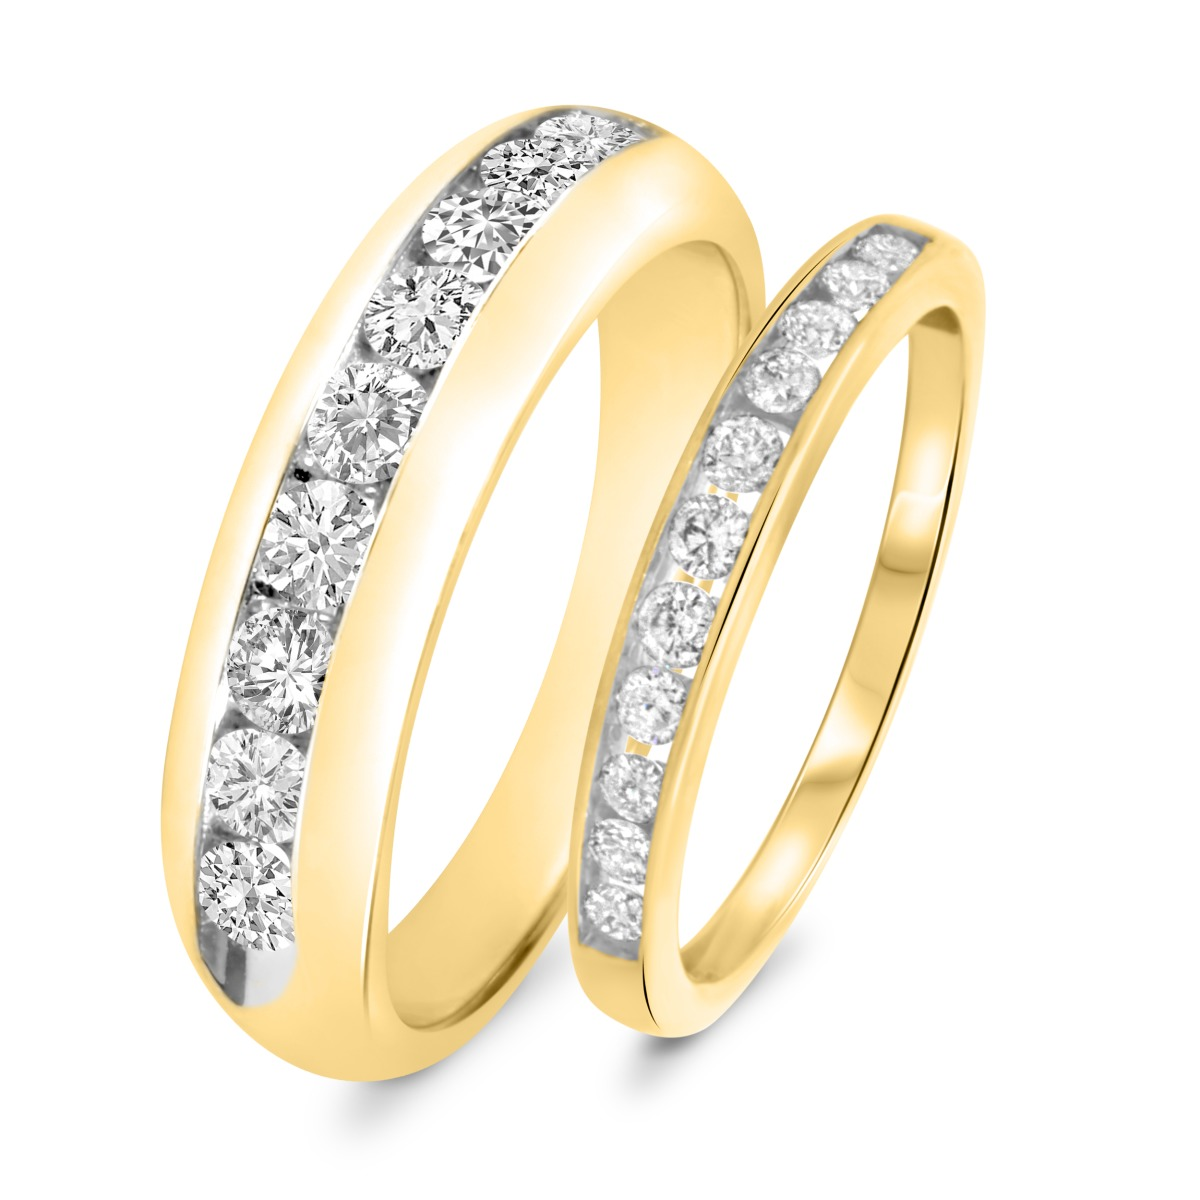 1 1/4 Carat T.W. Diamond His And Hers Wedding Band Set 14K Yellow Gold